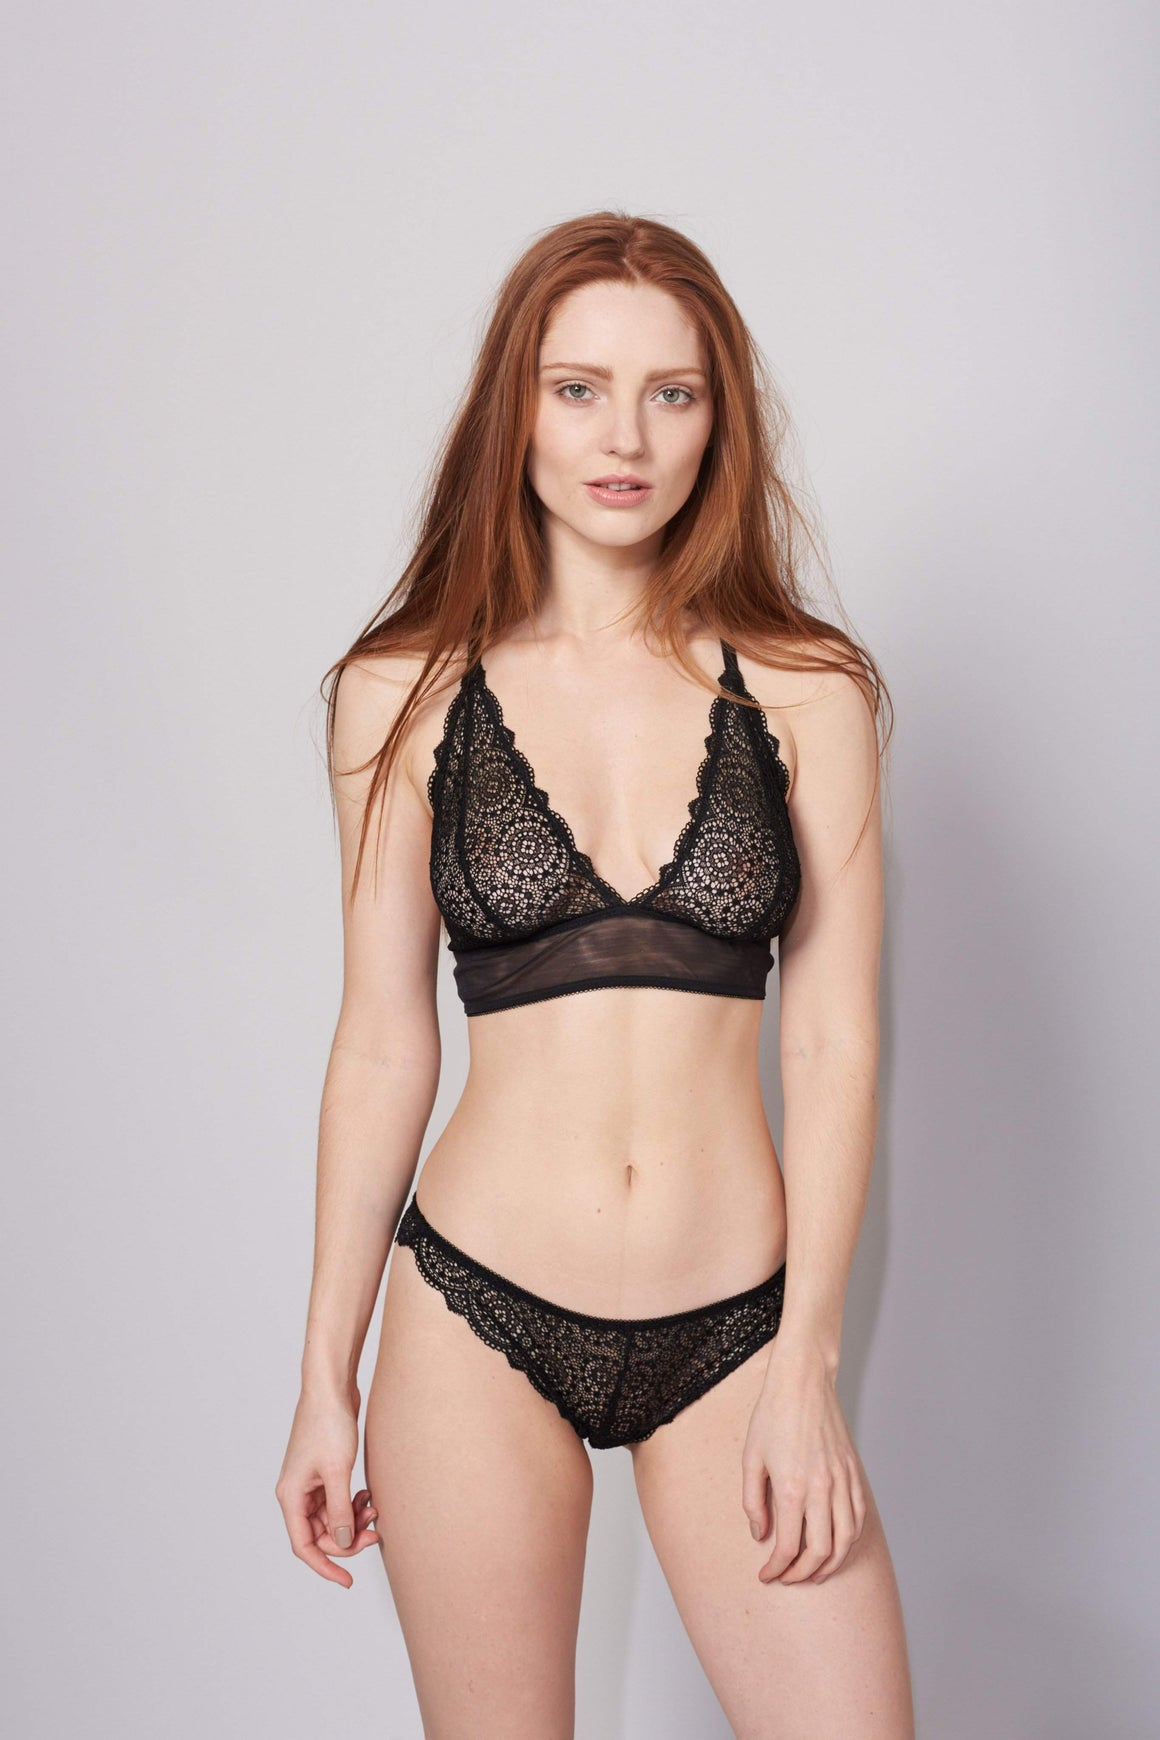 Sophia Triangle Bra in Black by Lepel London - Charnos / Lepel - Katys Boutique Lingerie USA